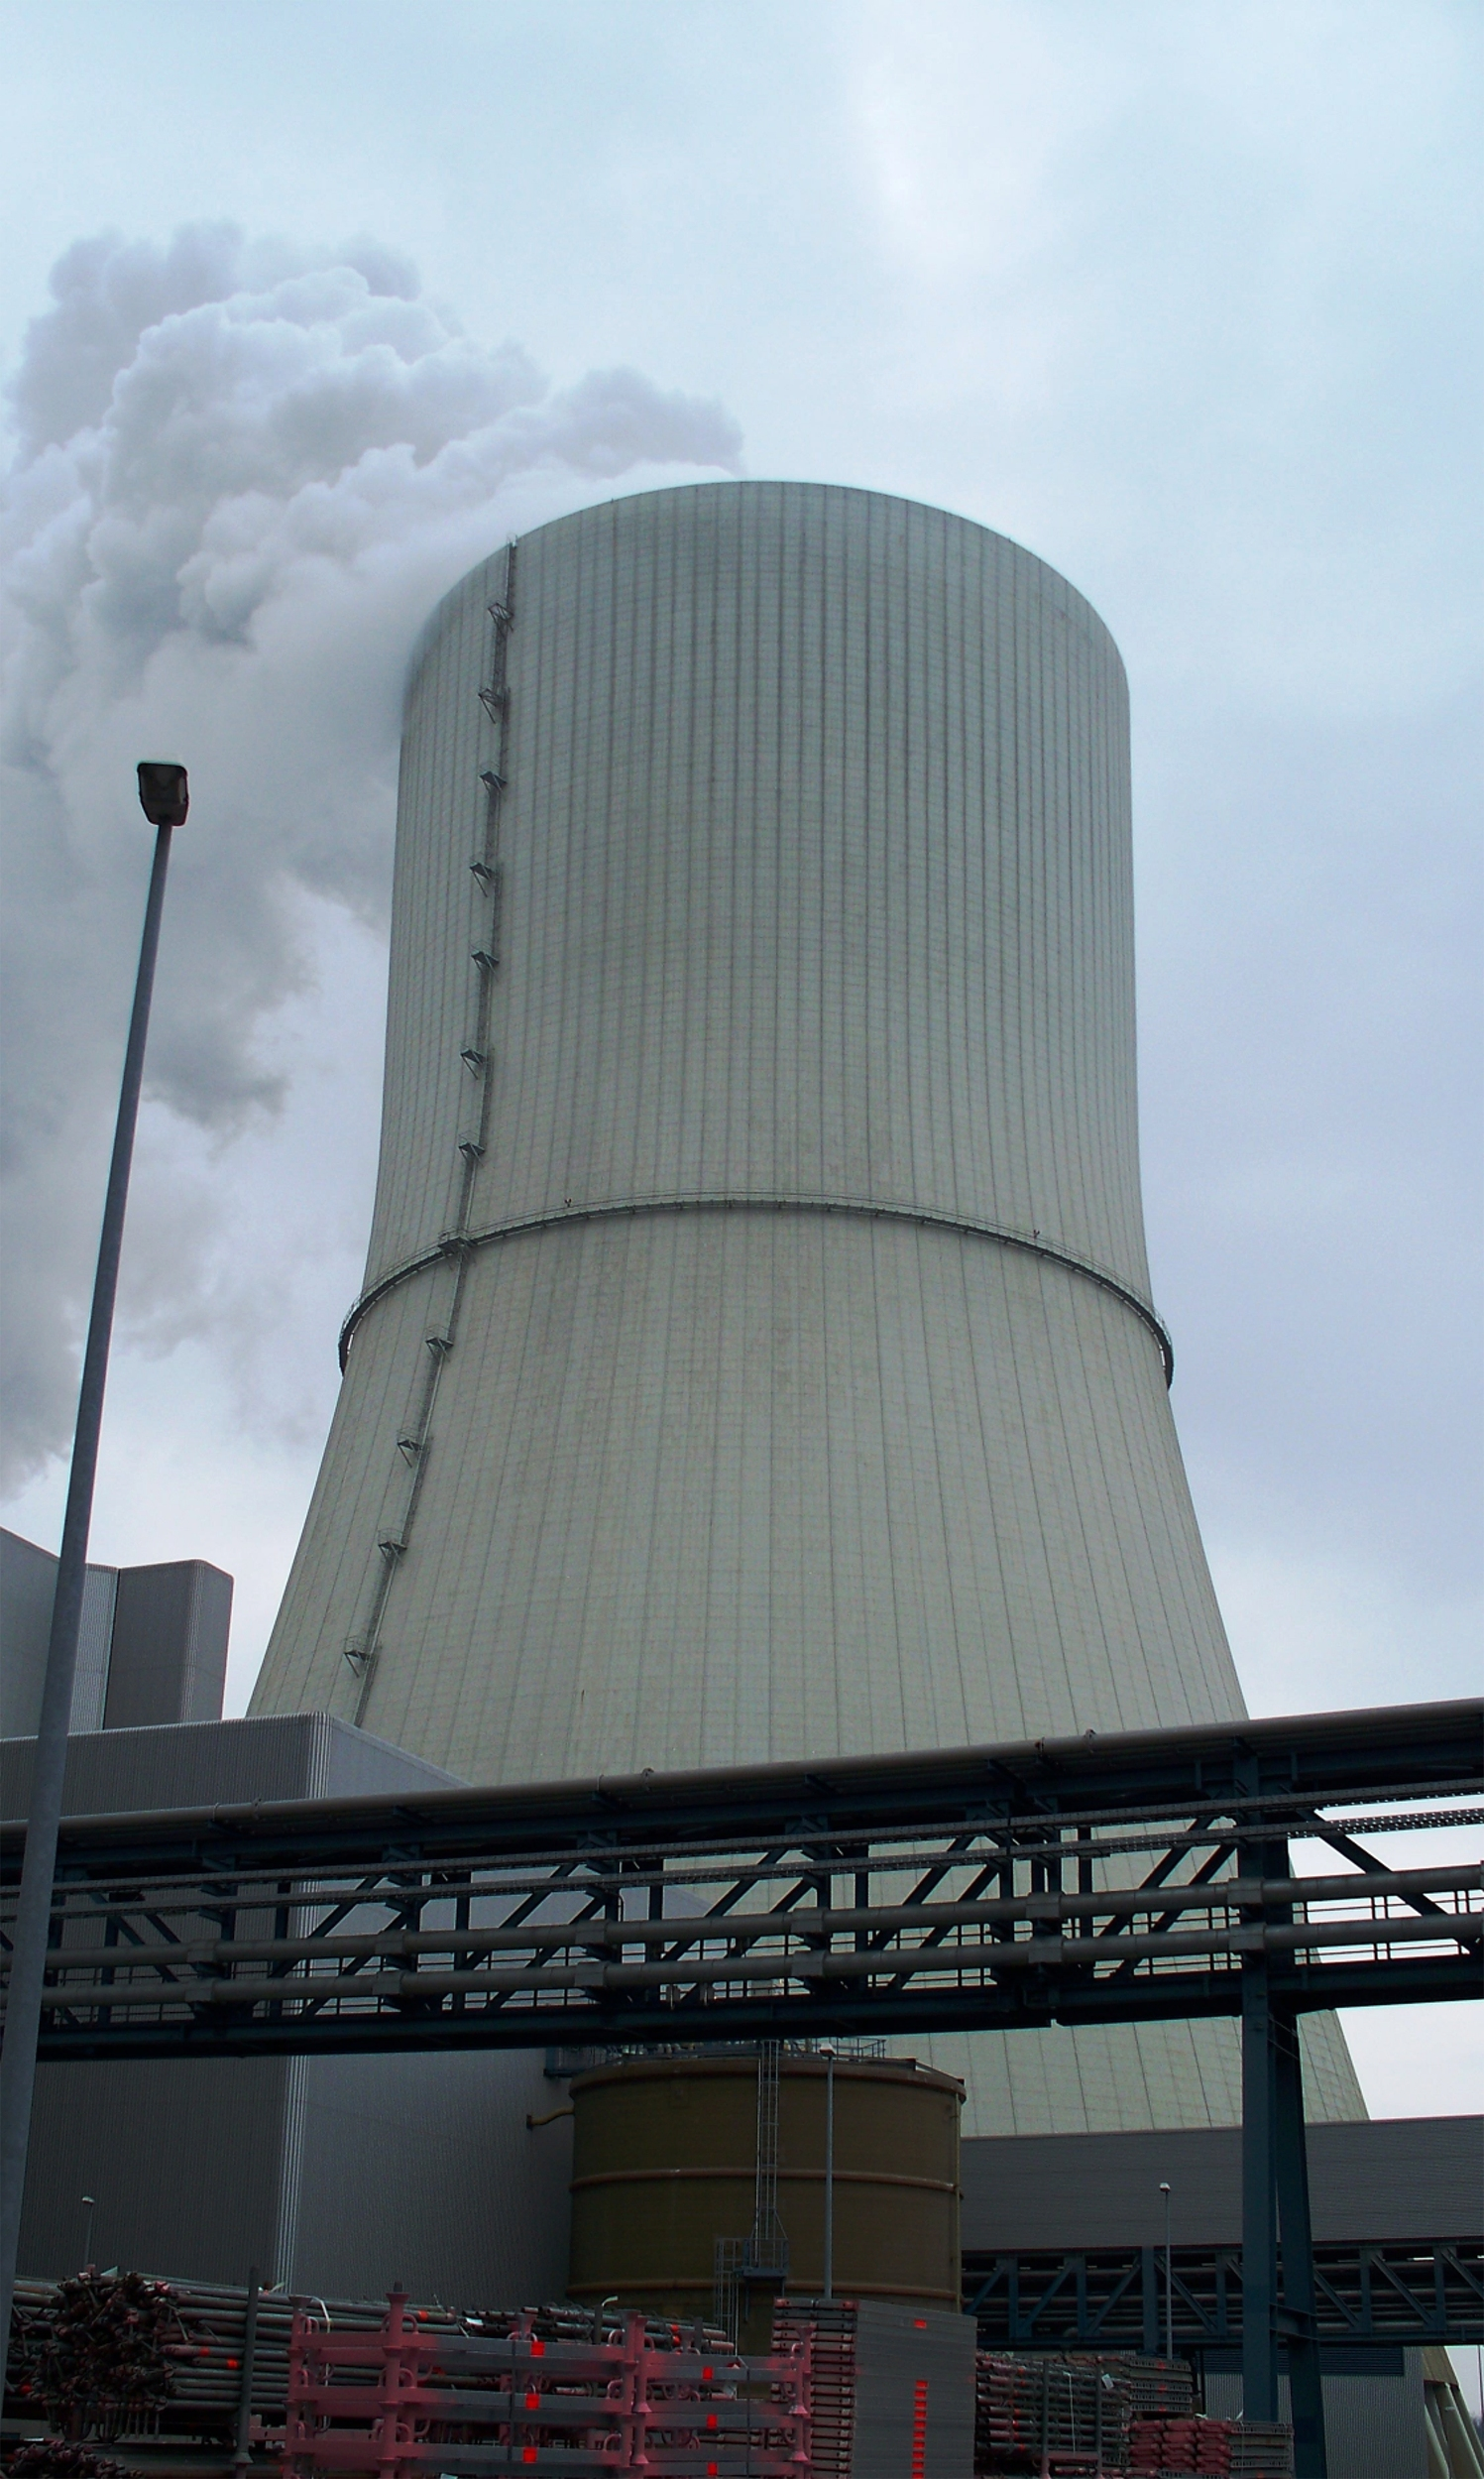 Cooling Towers How They Work : File cooling tower lippendorf g wikimedia commons